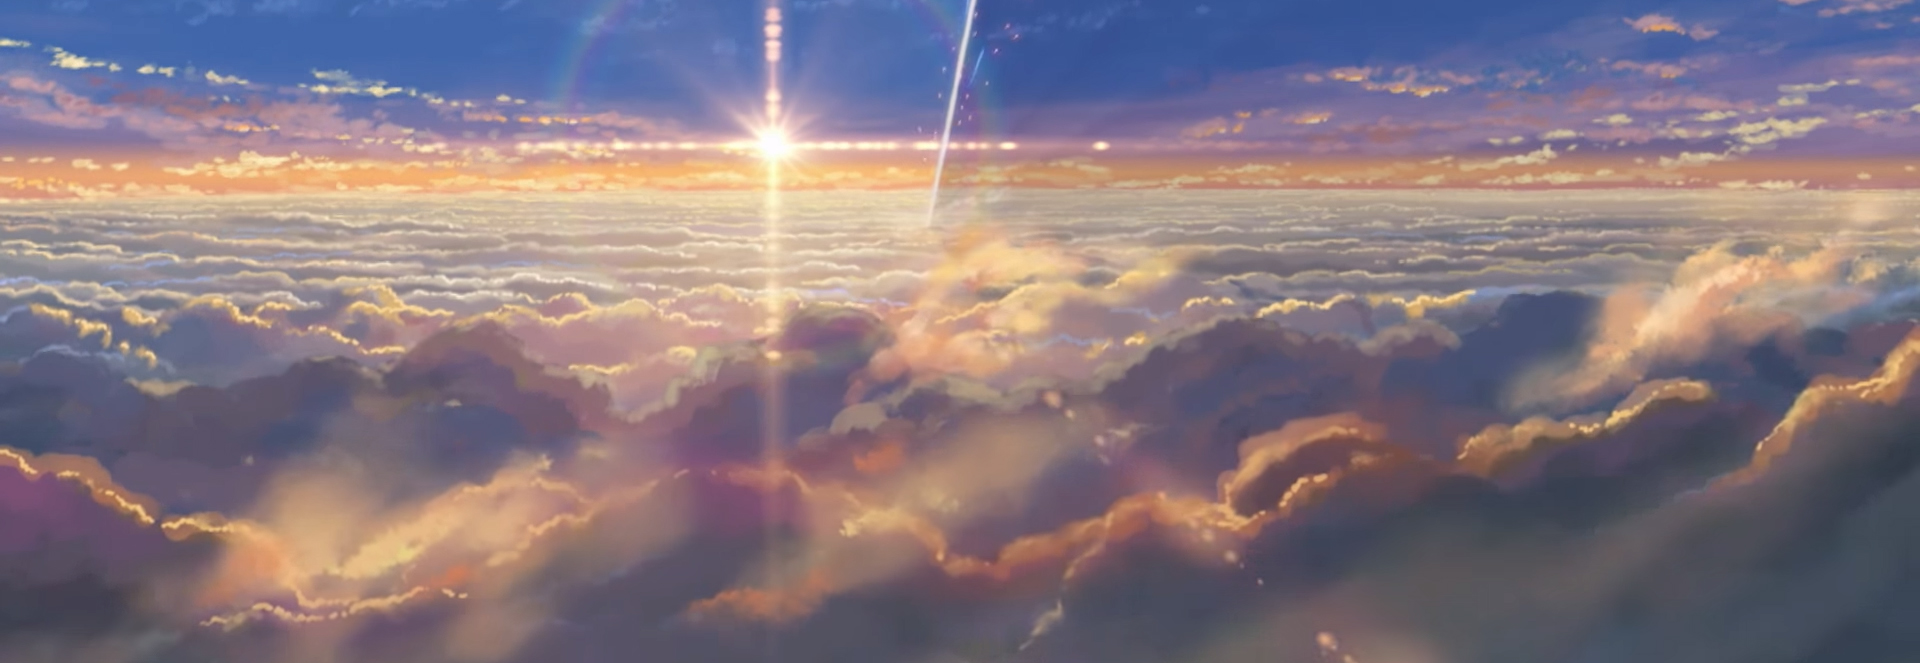 Your Name (Kimi no Na wa, 君の名は). Image Credit: Madman.